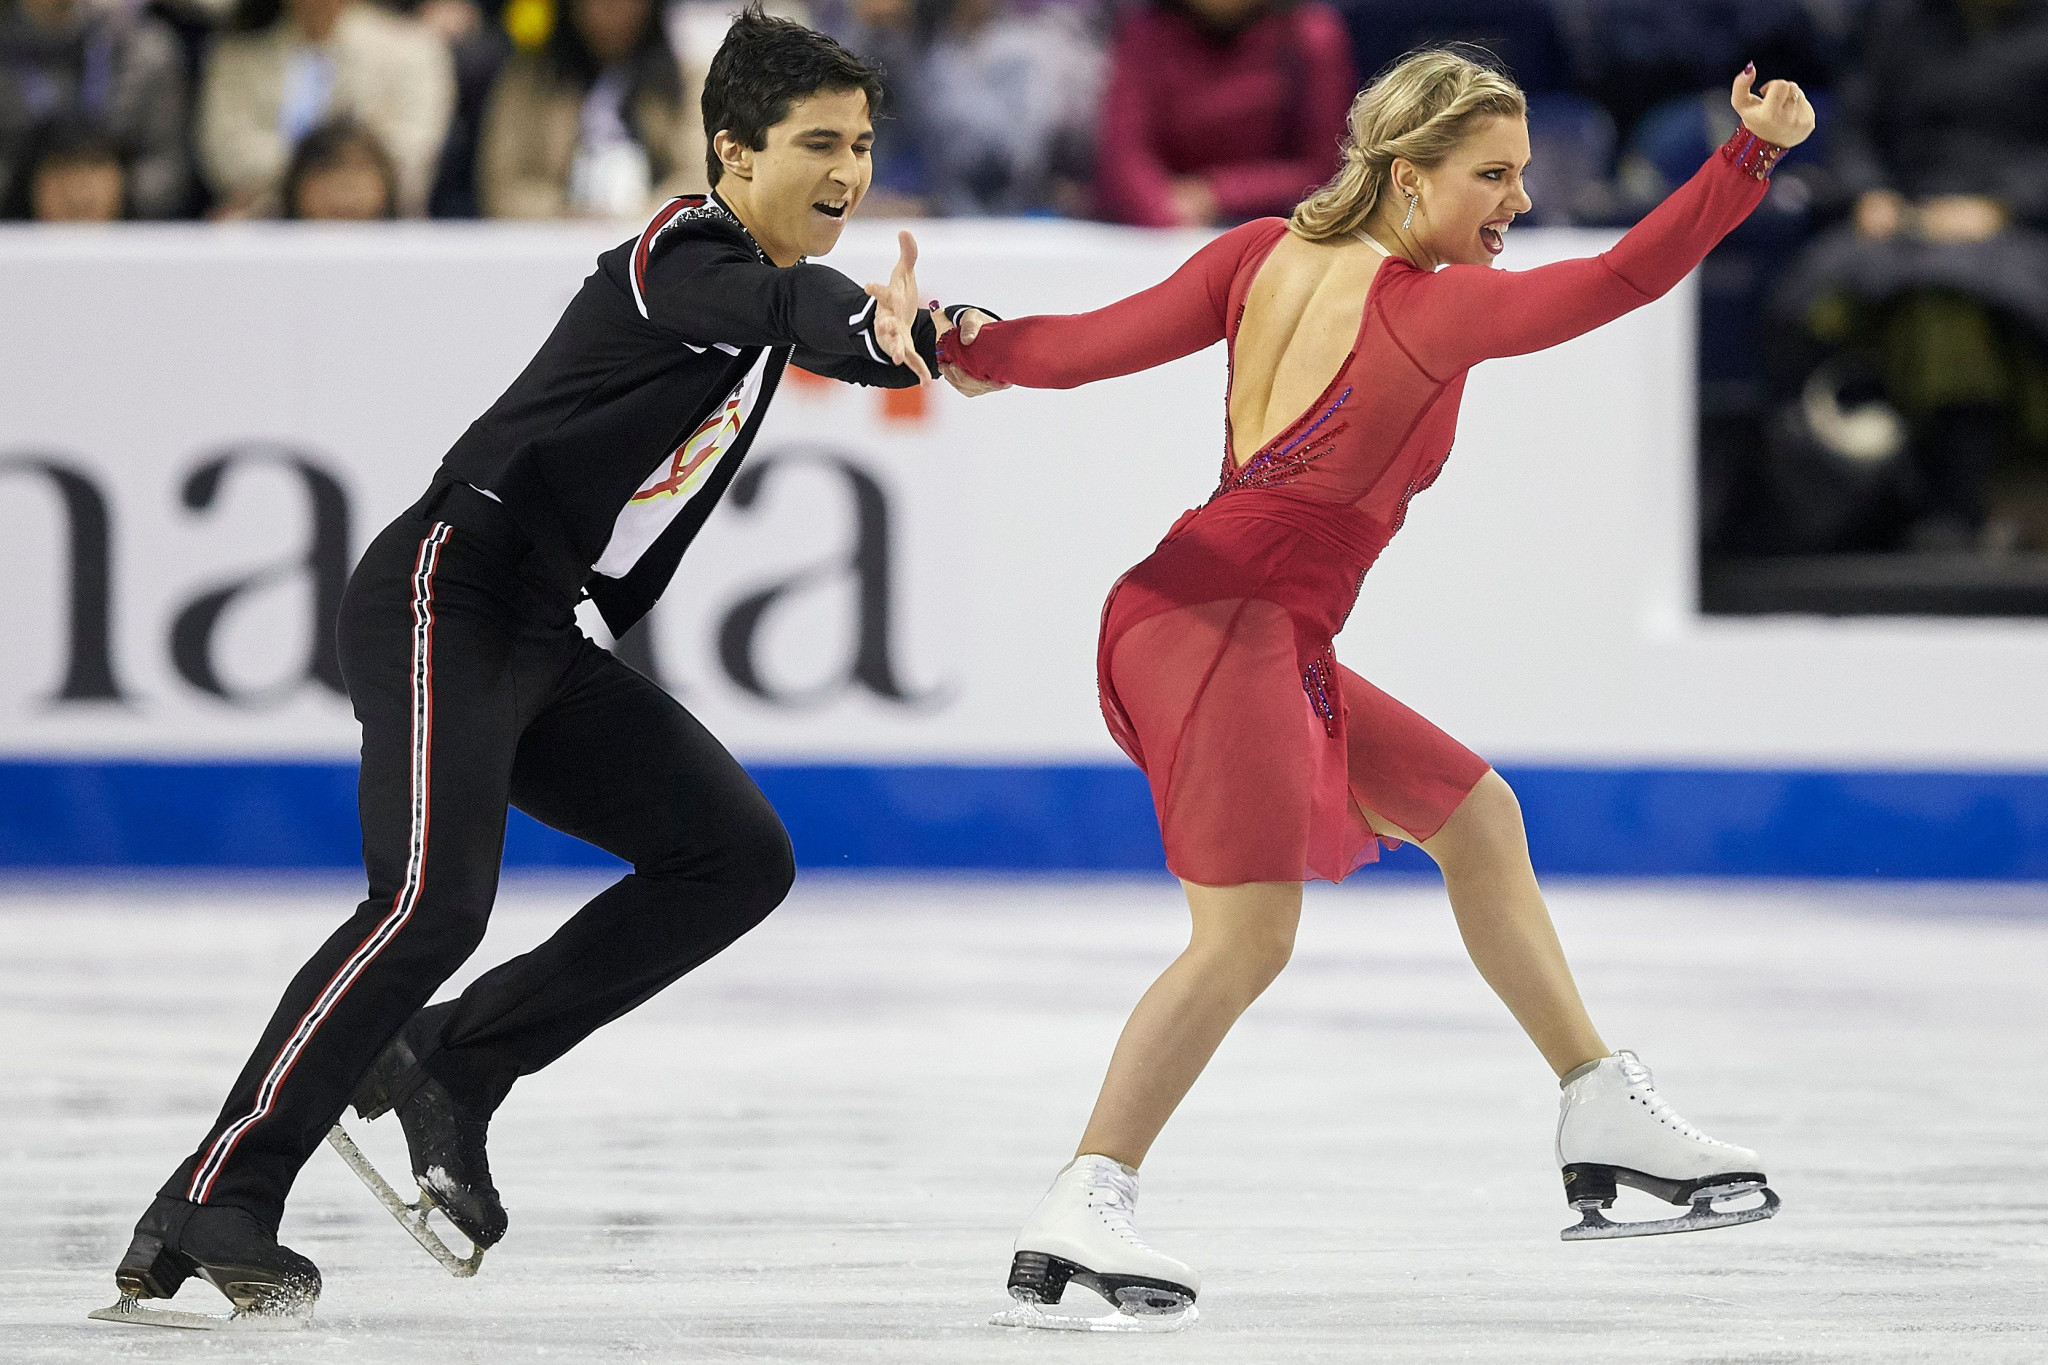 Marjorie Lajoie and Zachary Lagha captured ice dancing gold for Canada when the World Junior Figure Skating Championships were held in Zagreb in Croatia in 2019 ©Getty Images